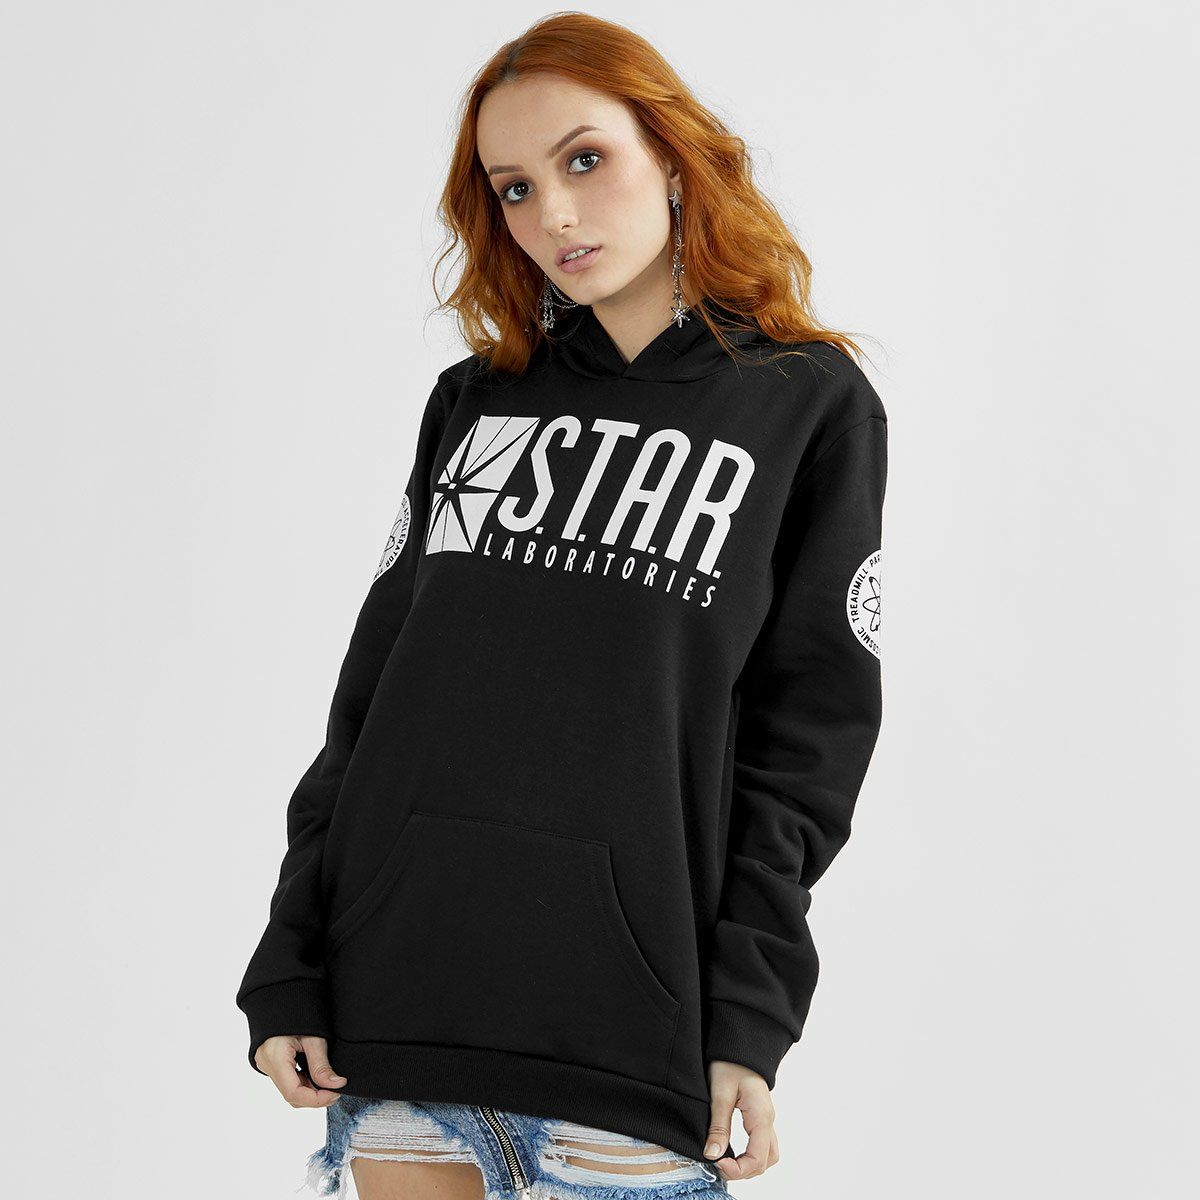 Moletom Feminino The Flash Serie Star Laboratories